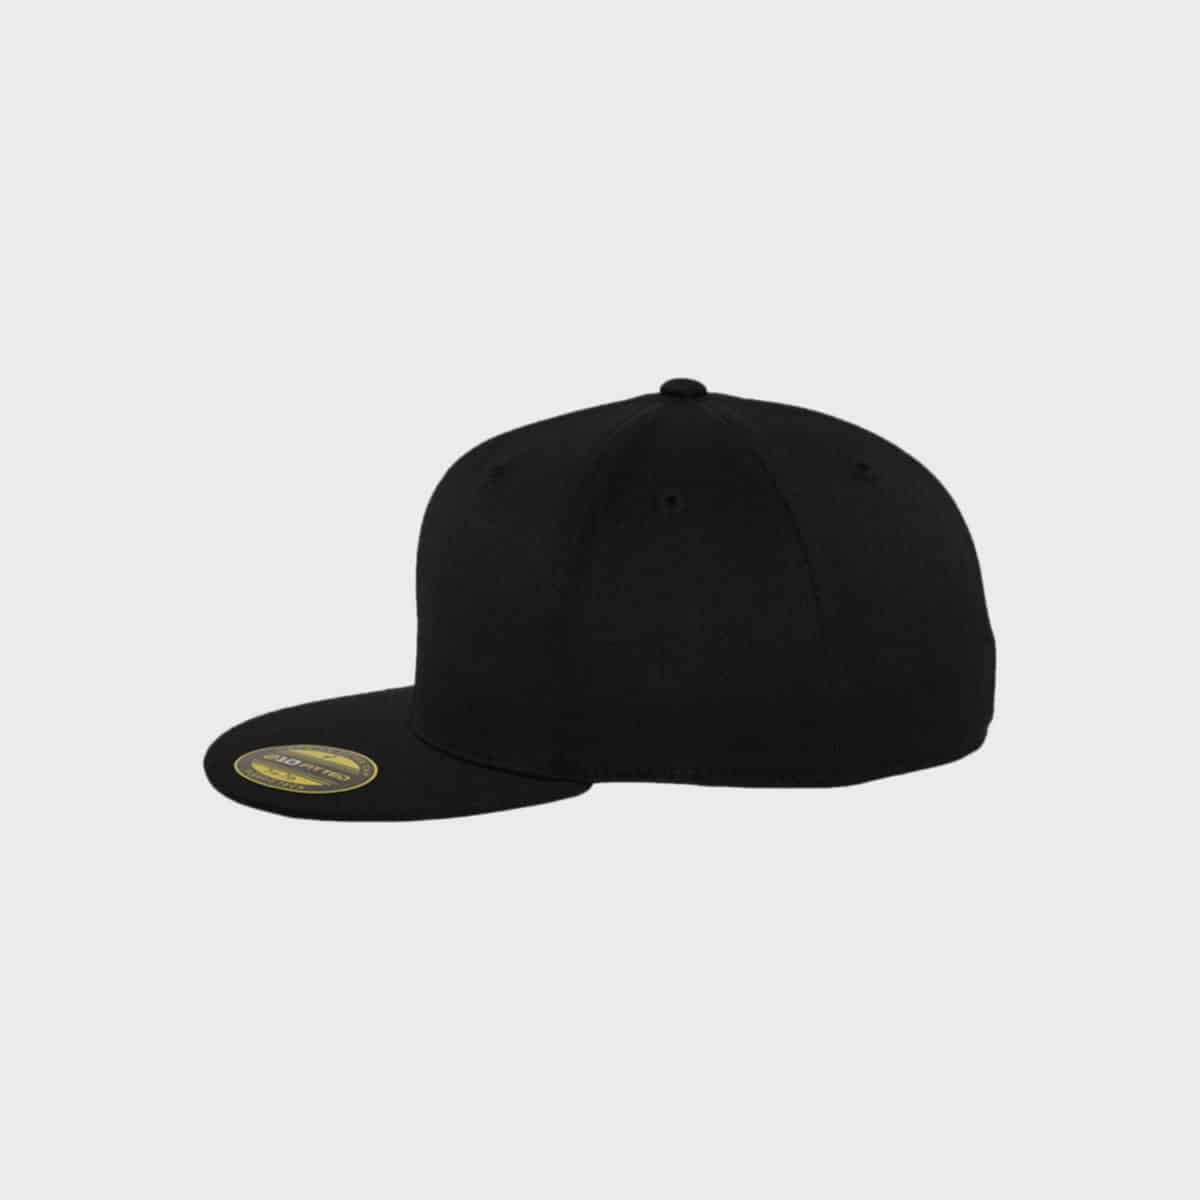 Flexfit FlexfitCaps FFE 6210 Black Side